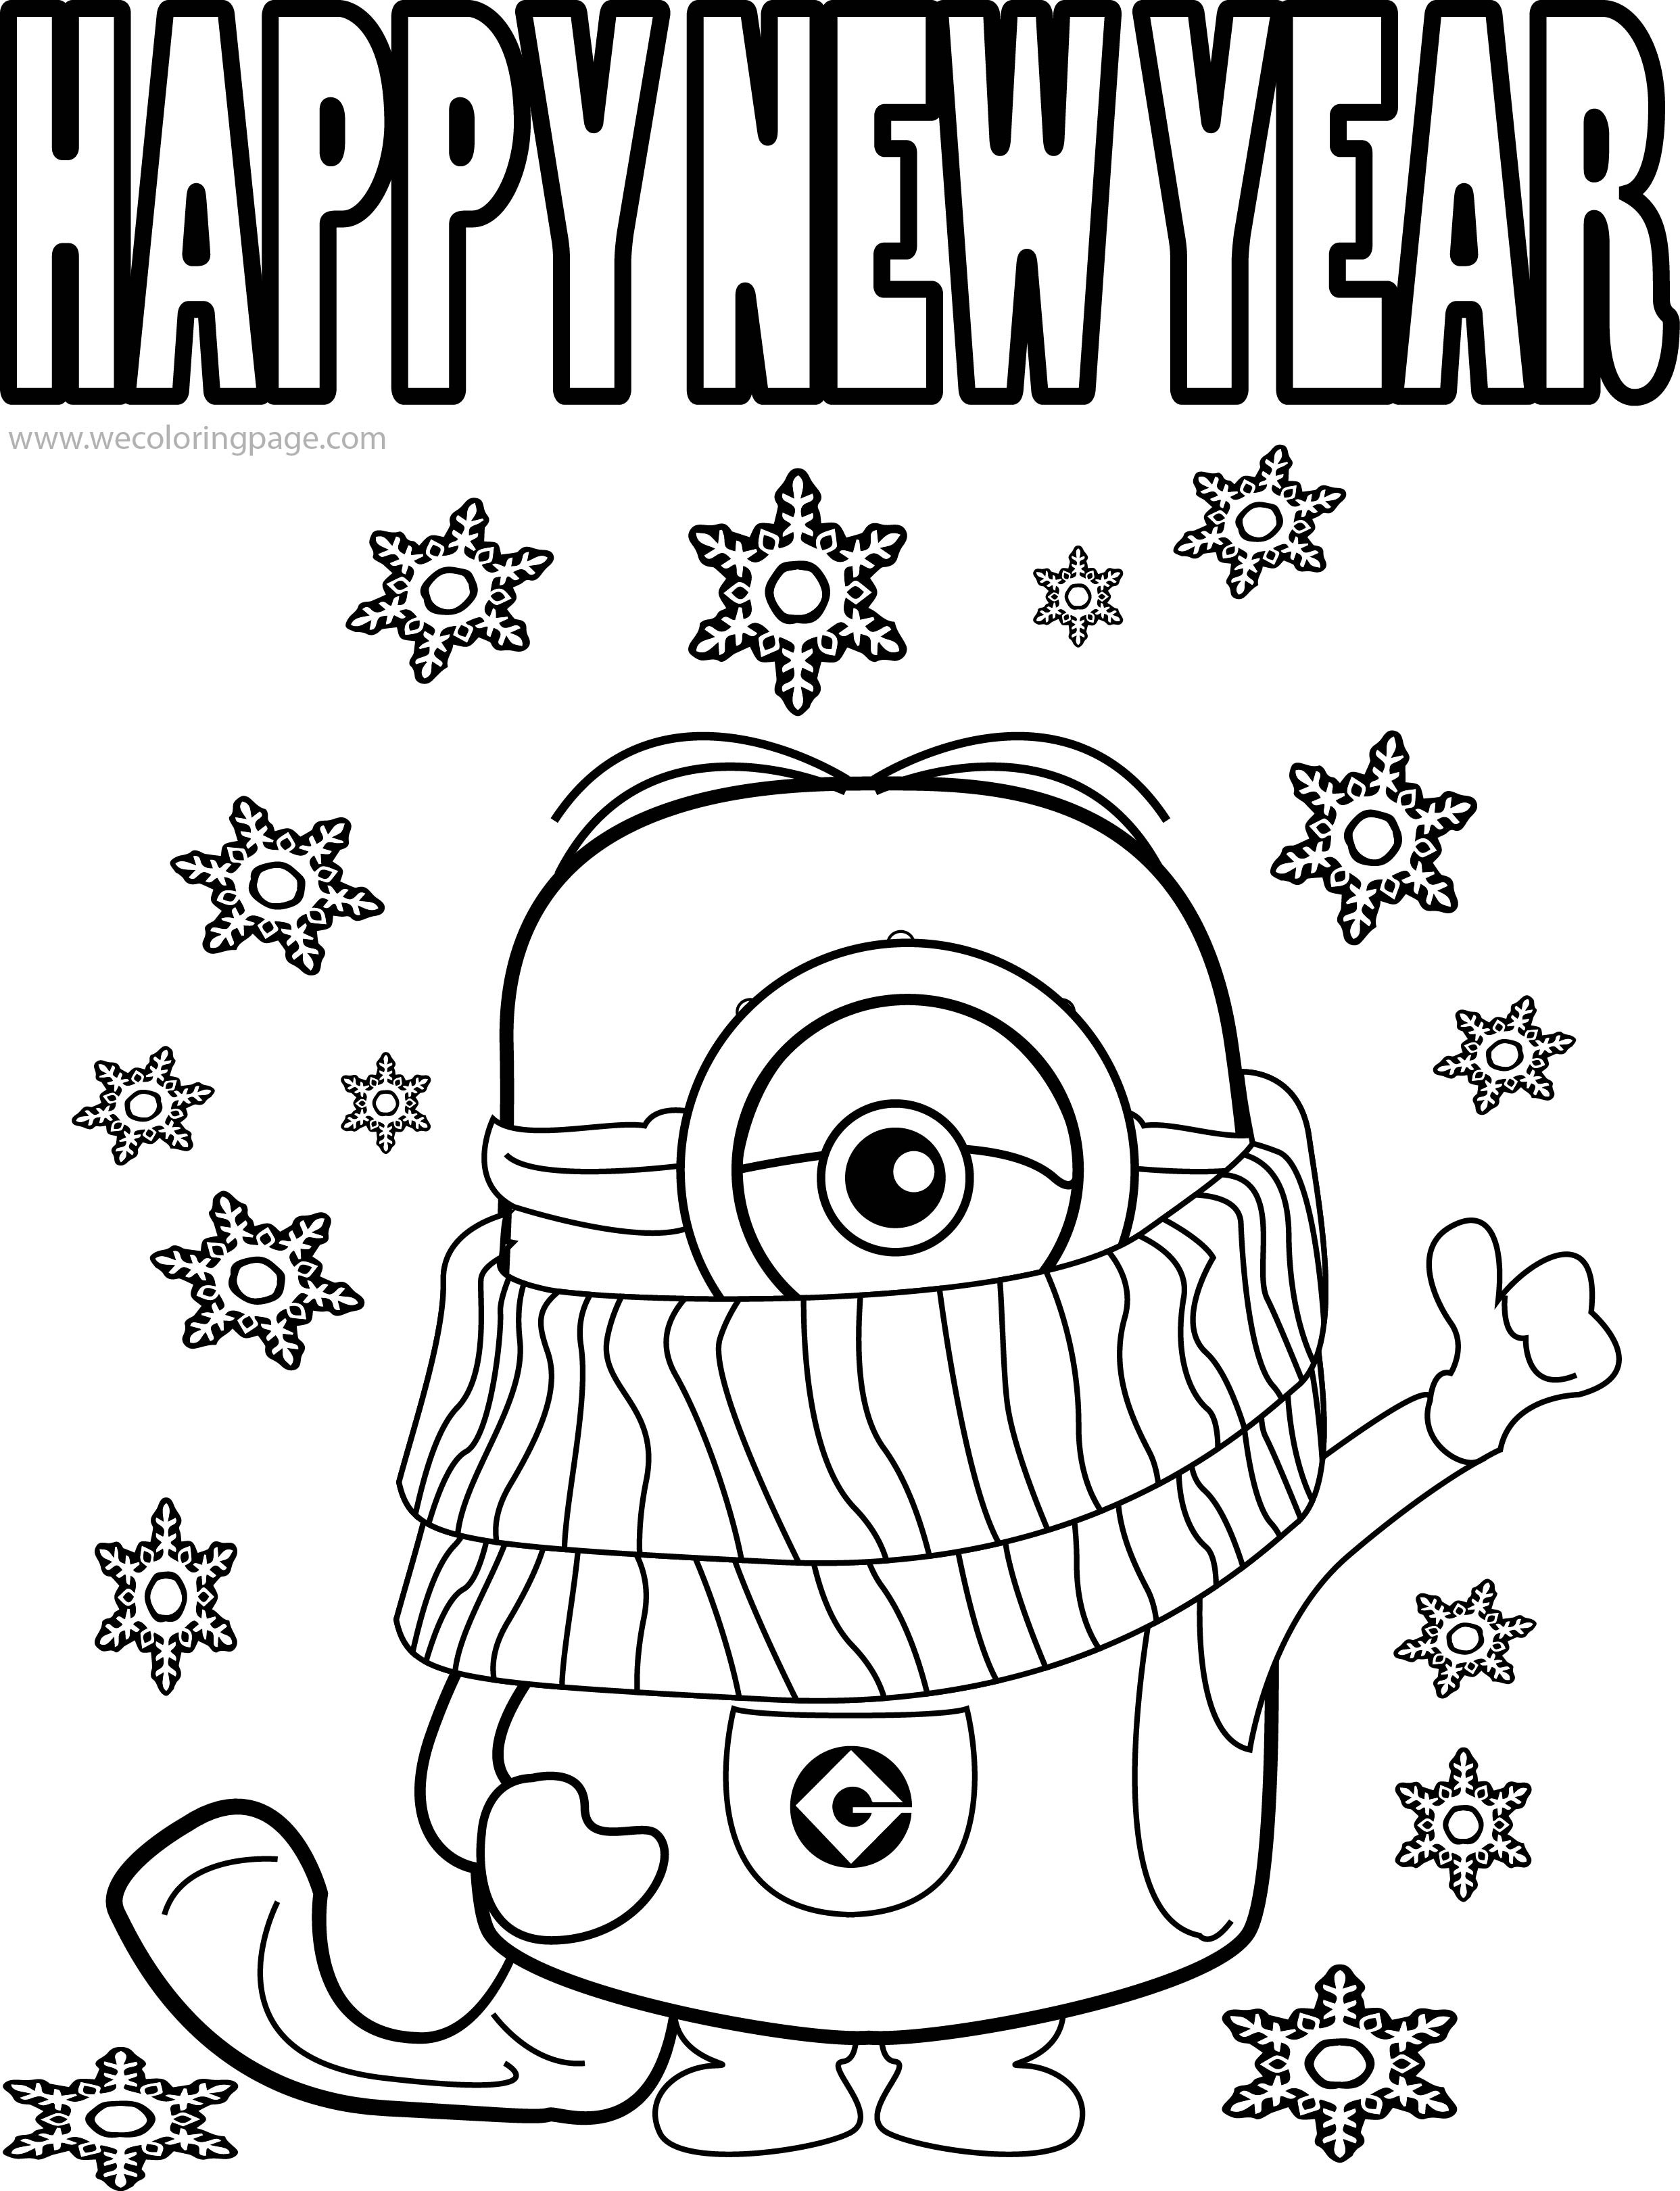 Best ideas about New Years Printable Coloring Sheets . Save or Pin Happy New Year 2019 Coloring Pages HD Printable s Now.